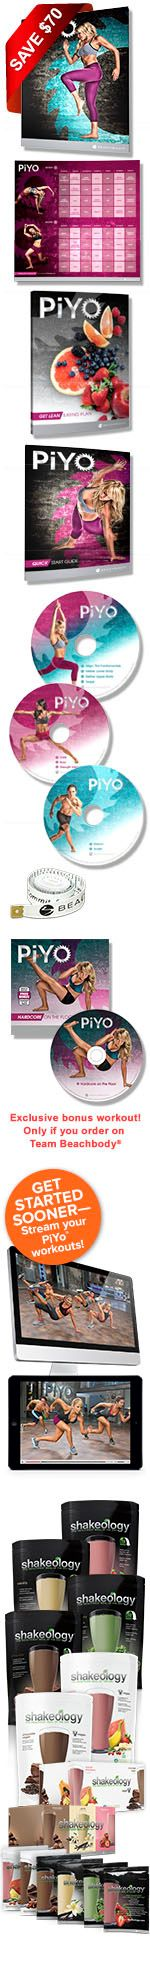 Piyo will give you results that you have always wanted and without the impact of most workout programs!!!!